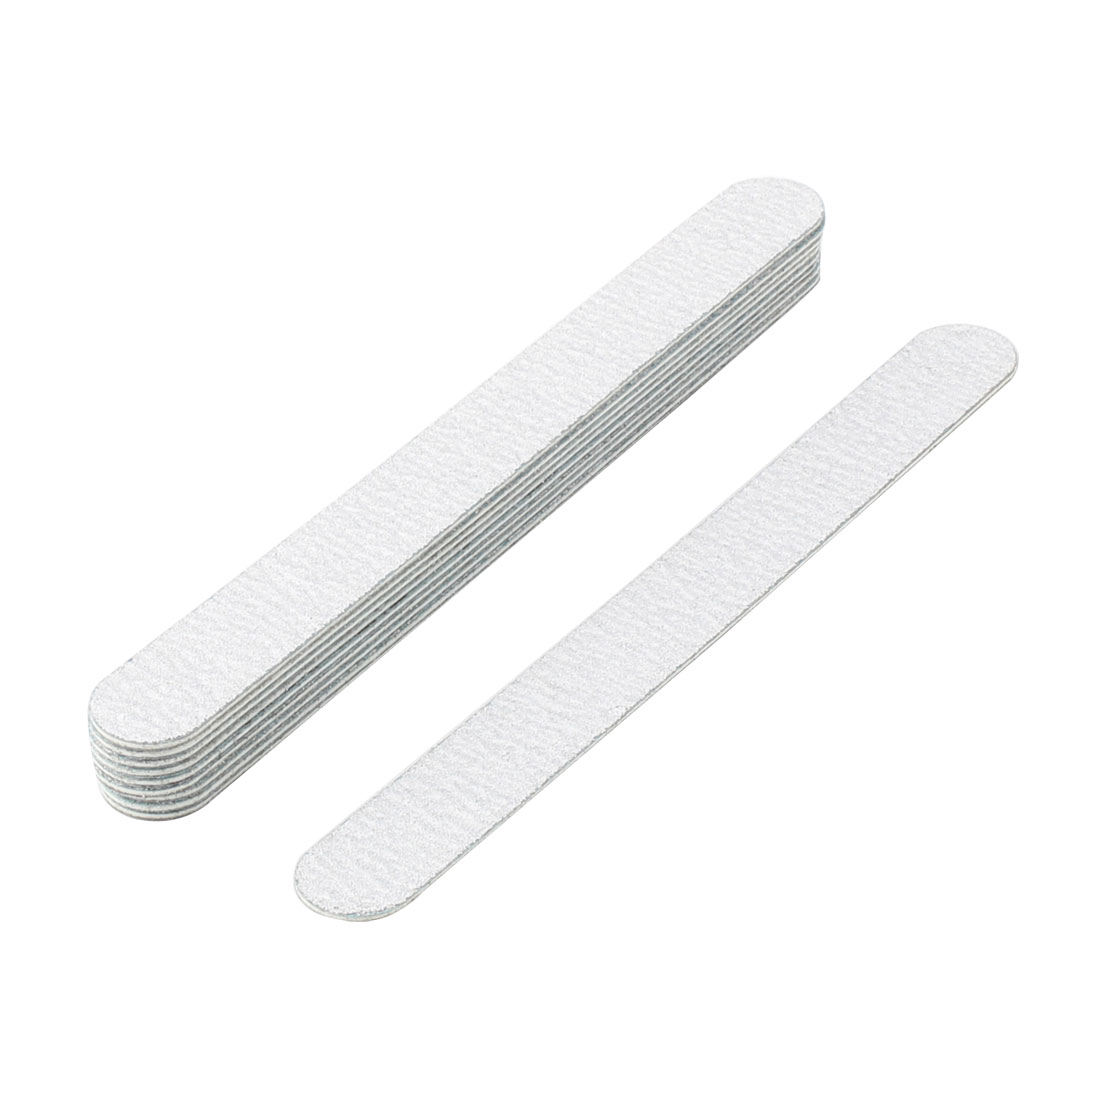 Lady Abrasive Board Disposable Beauty Care Nail File White 17.7cm Long 10 Pcs